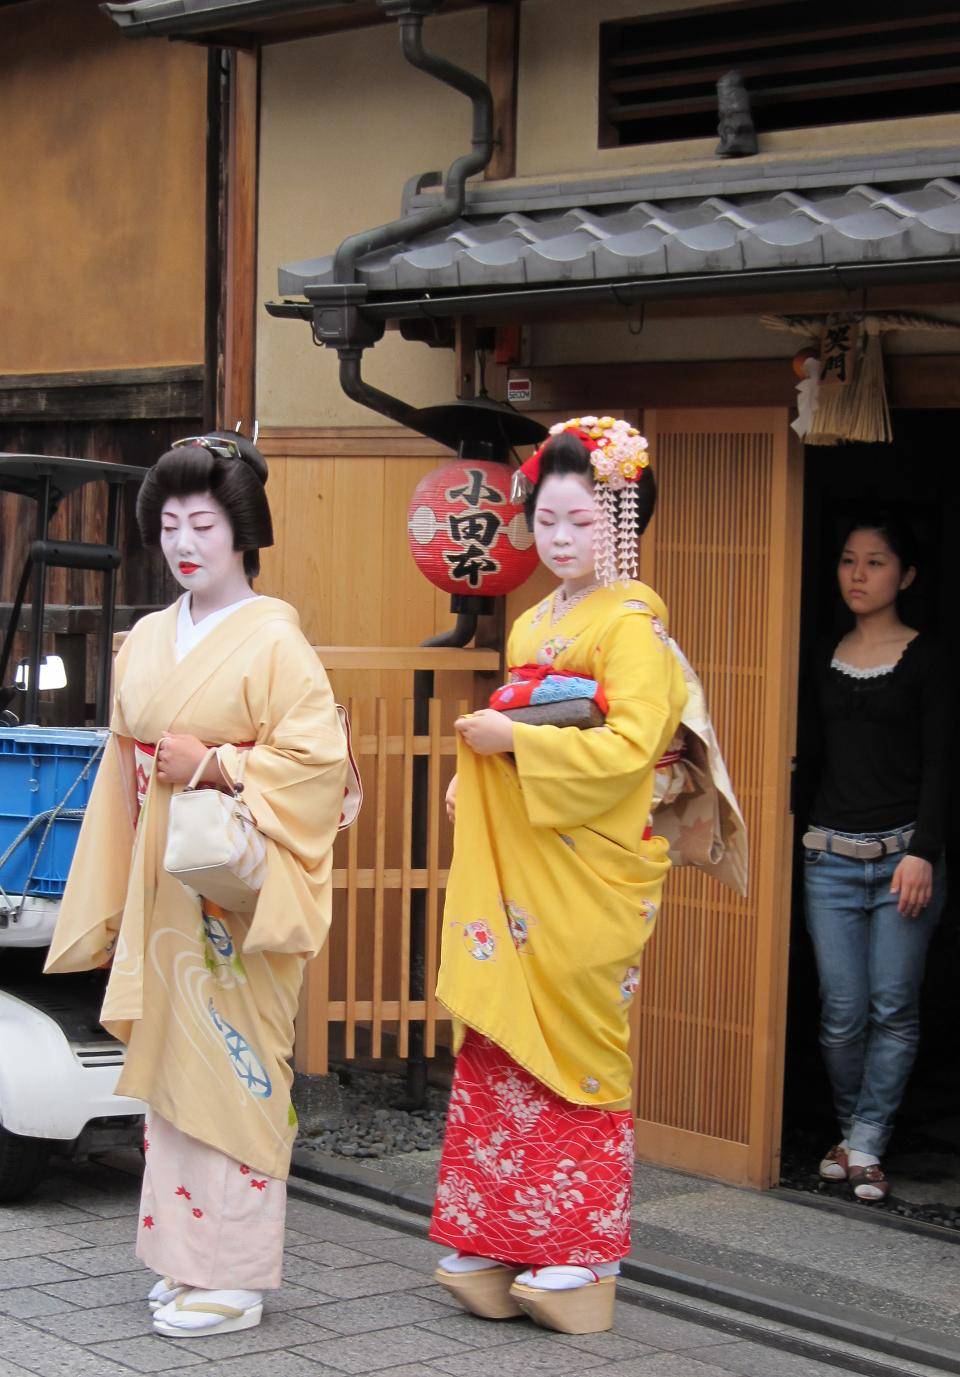 Apprentice geisha in western Japan, especially Kyoto